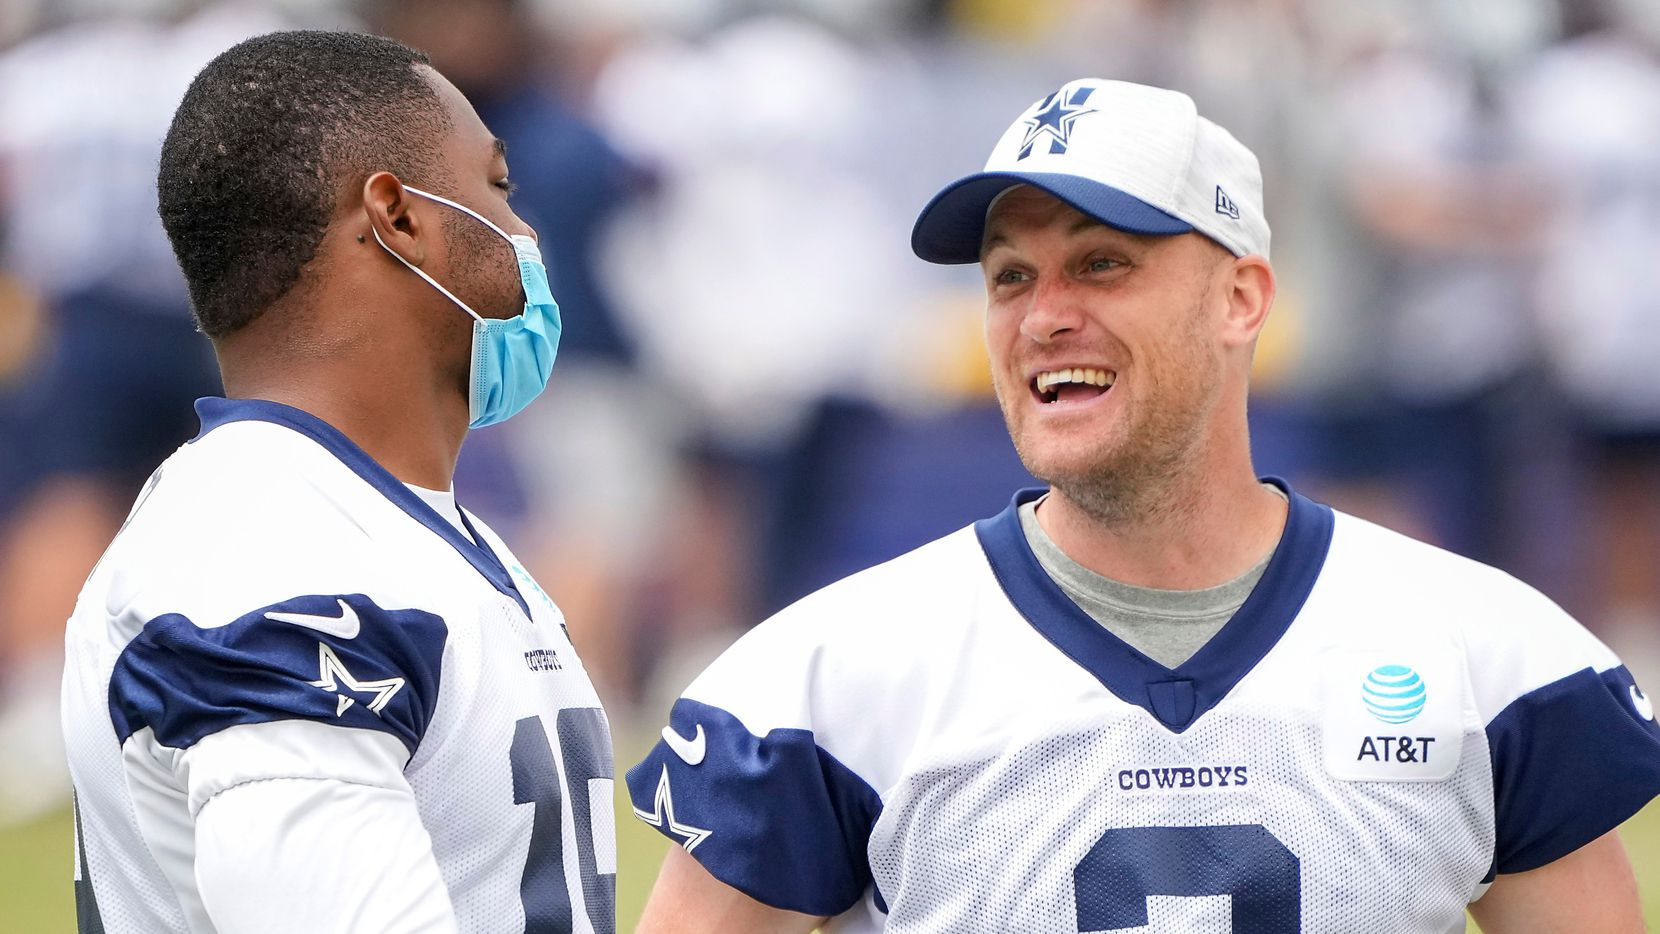 Dallas Cowboys wide receiver Amari Cooper talks with kicker Greg Zuerlein (2) on the sidelines during a practice at training camp on Tuesday, July 27, 2021, in Oxnard, Calif. (Smiley N. Pool/The Dallas Morning News)